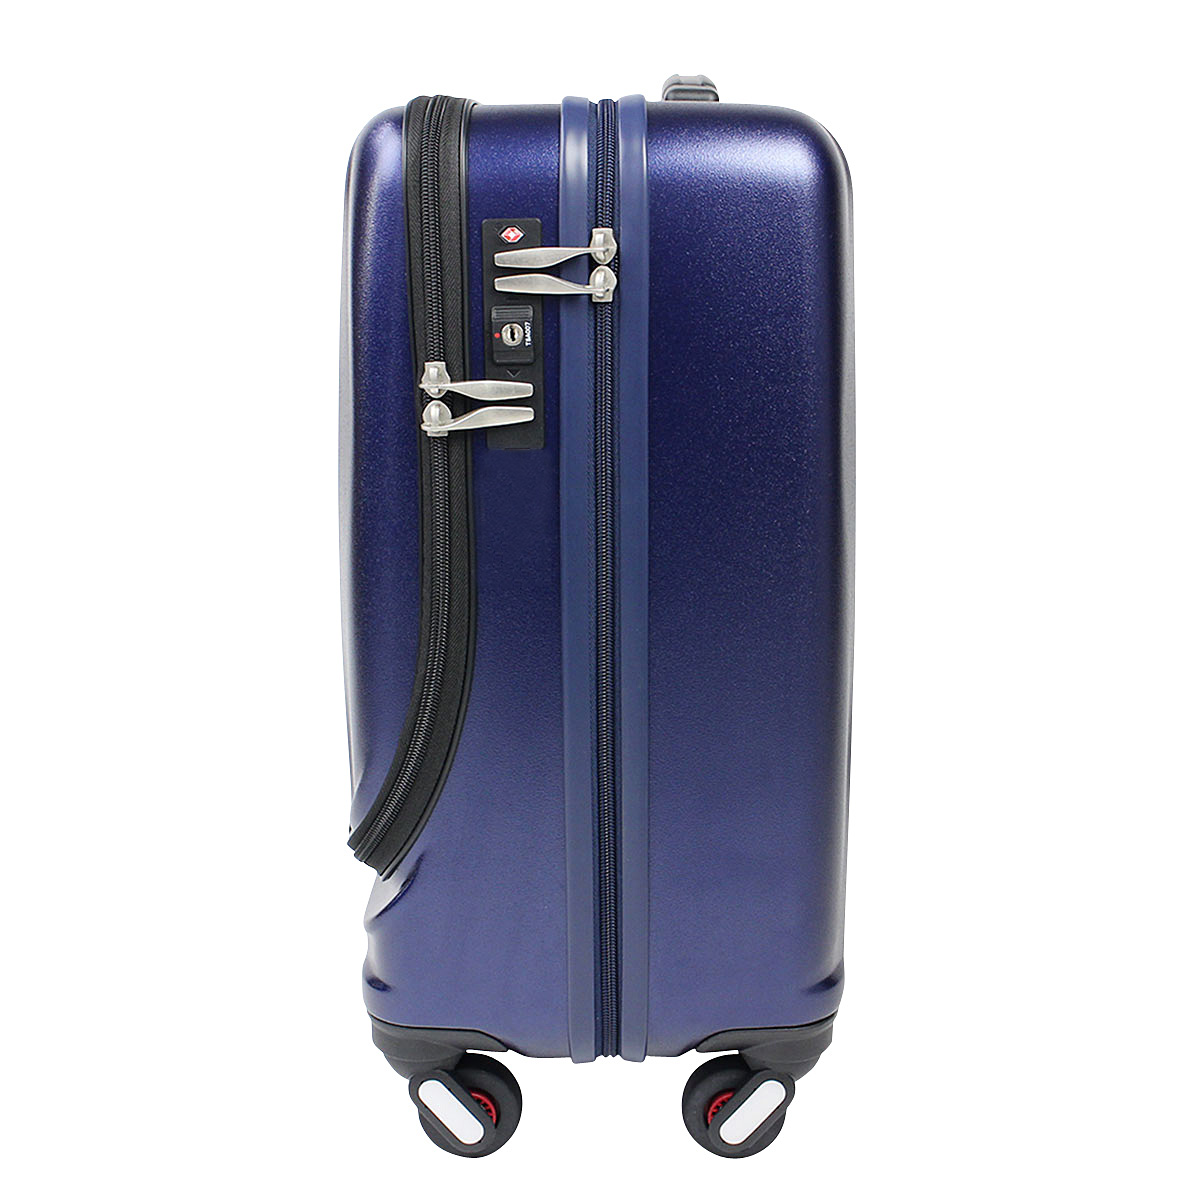 Galleria Bag Luggage Suitcase Frequenter Clam Front Open